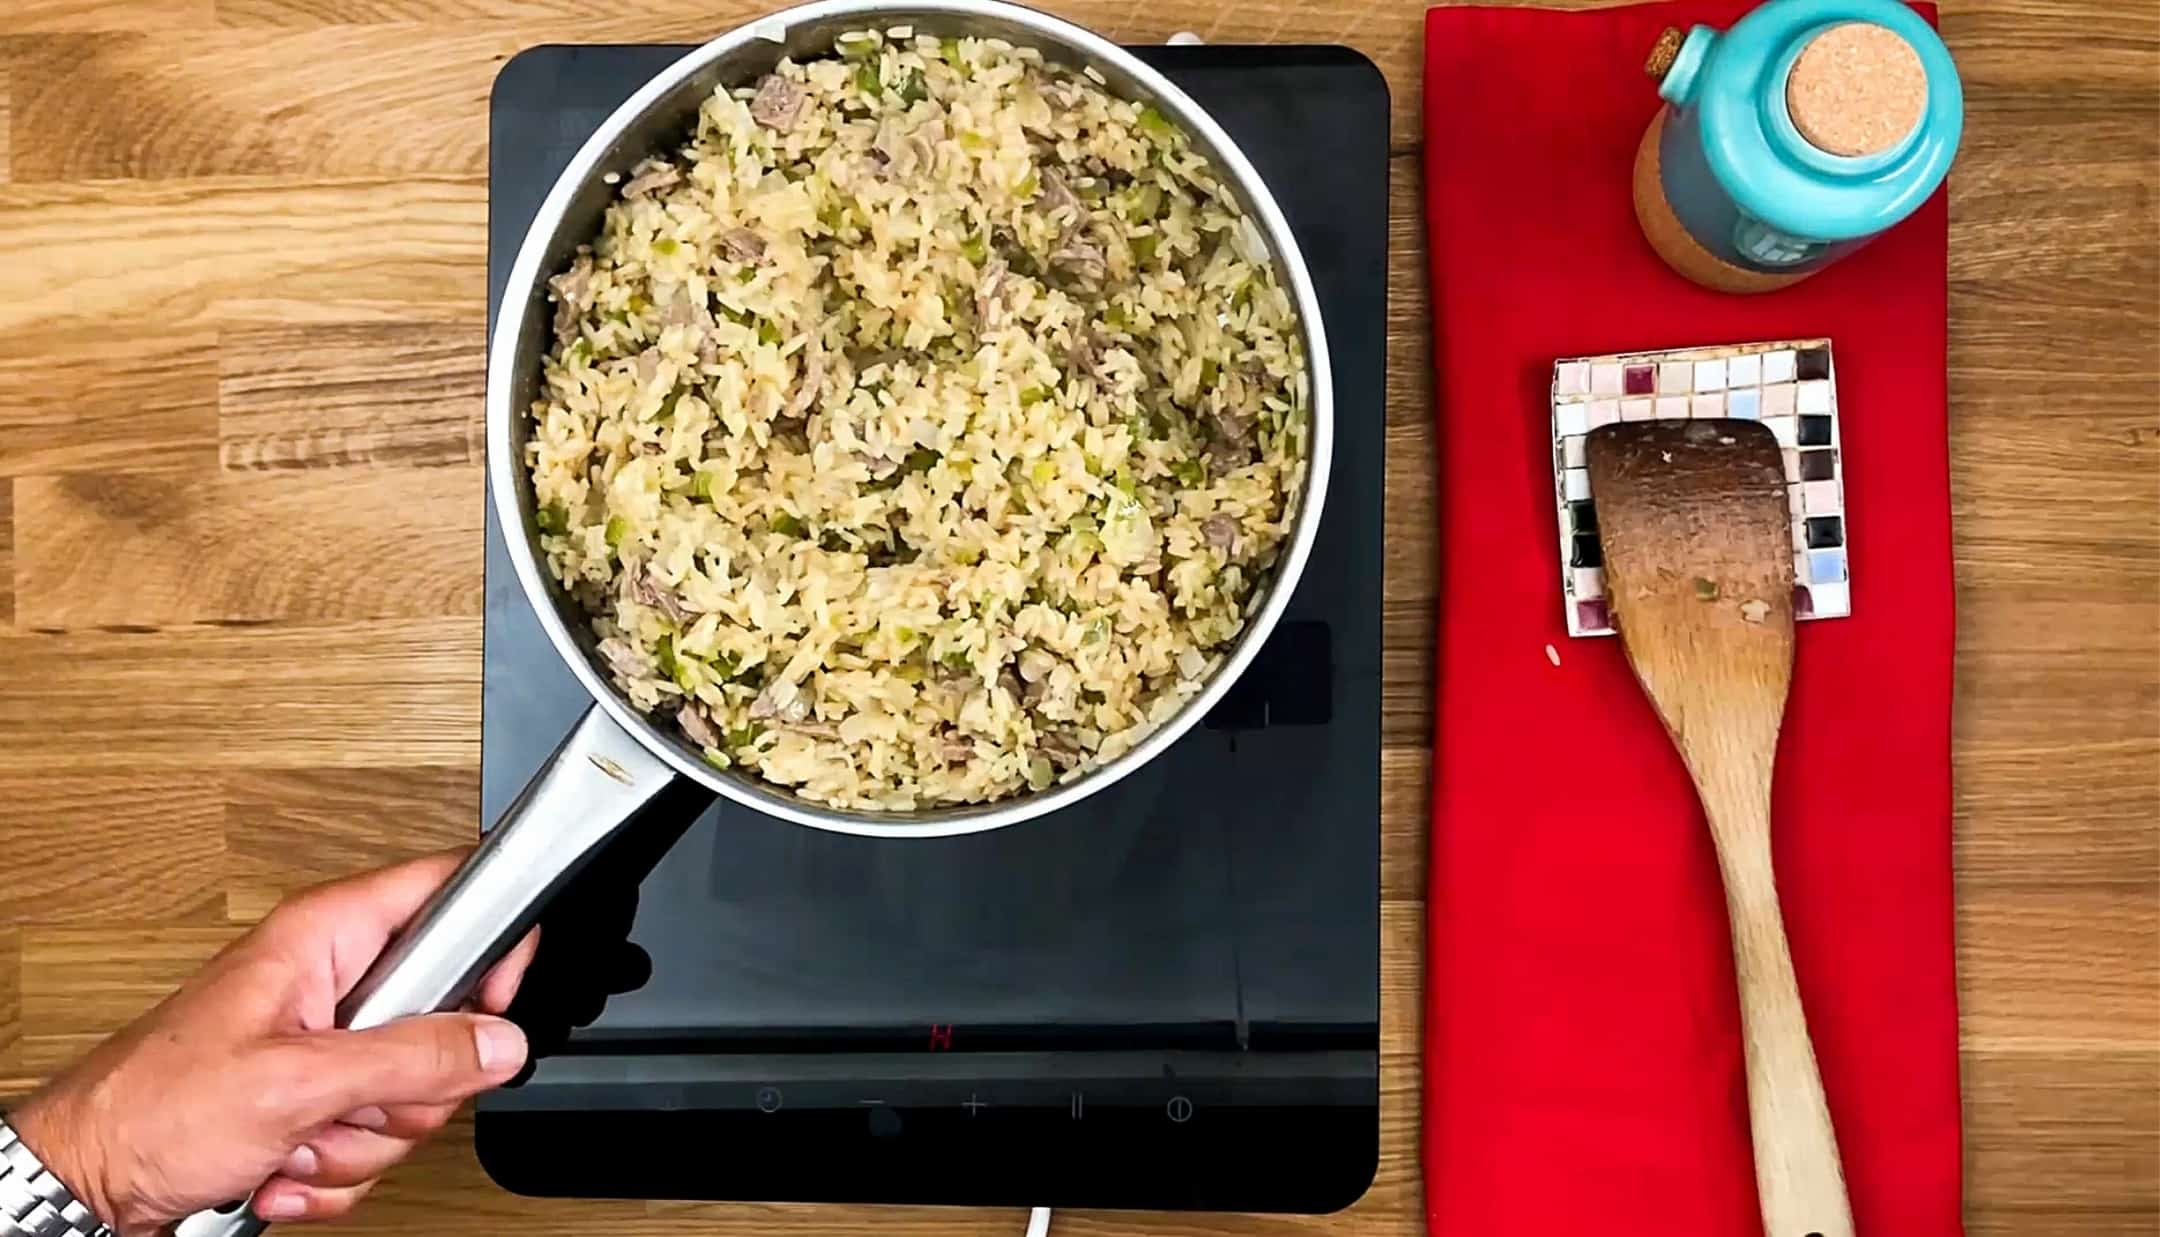 Beef fried rice cook on a stove